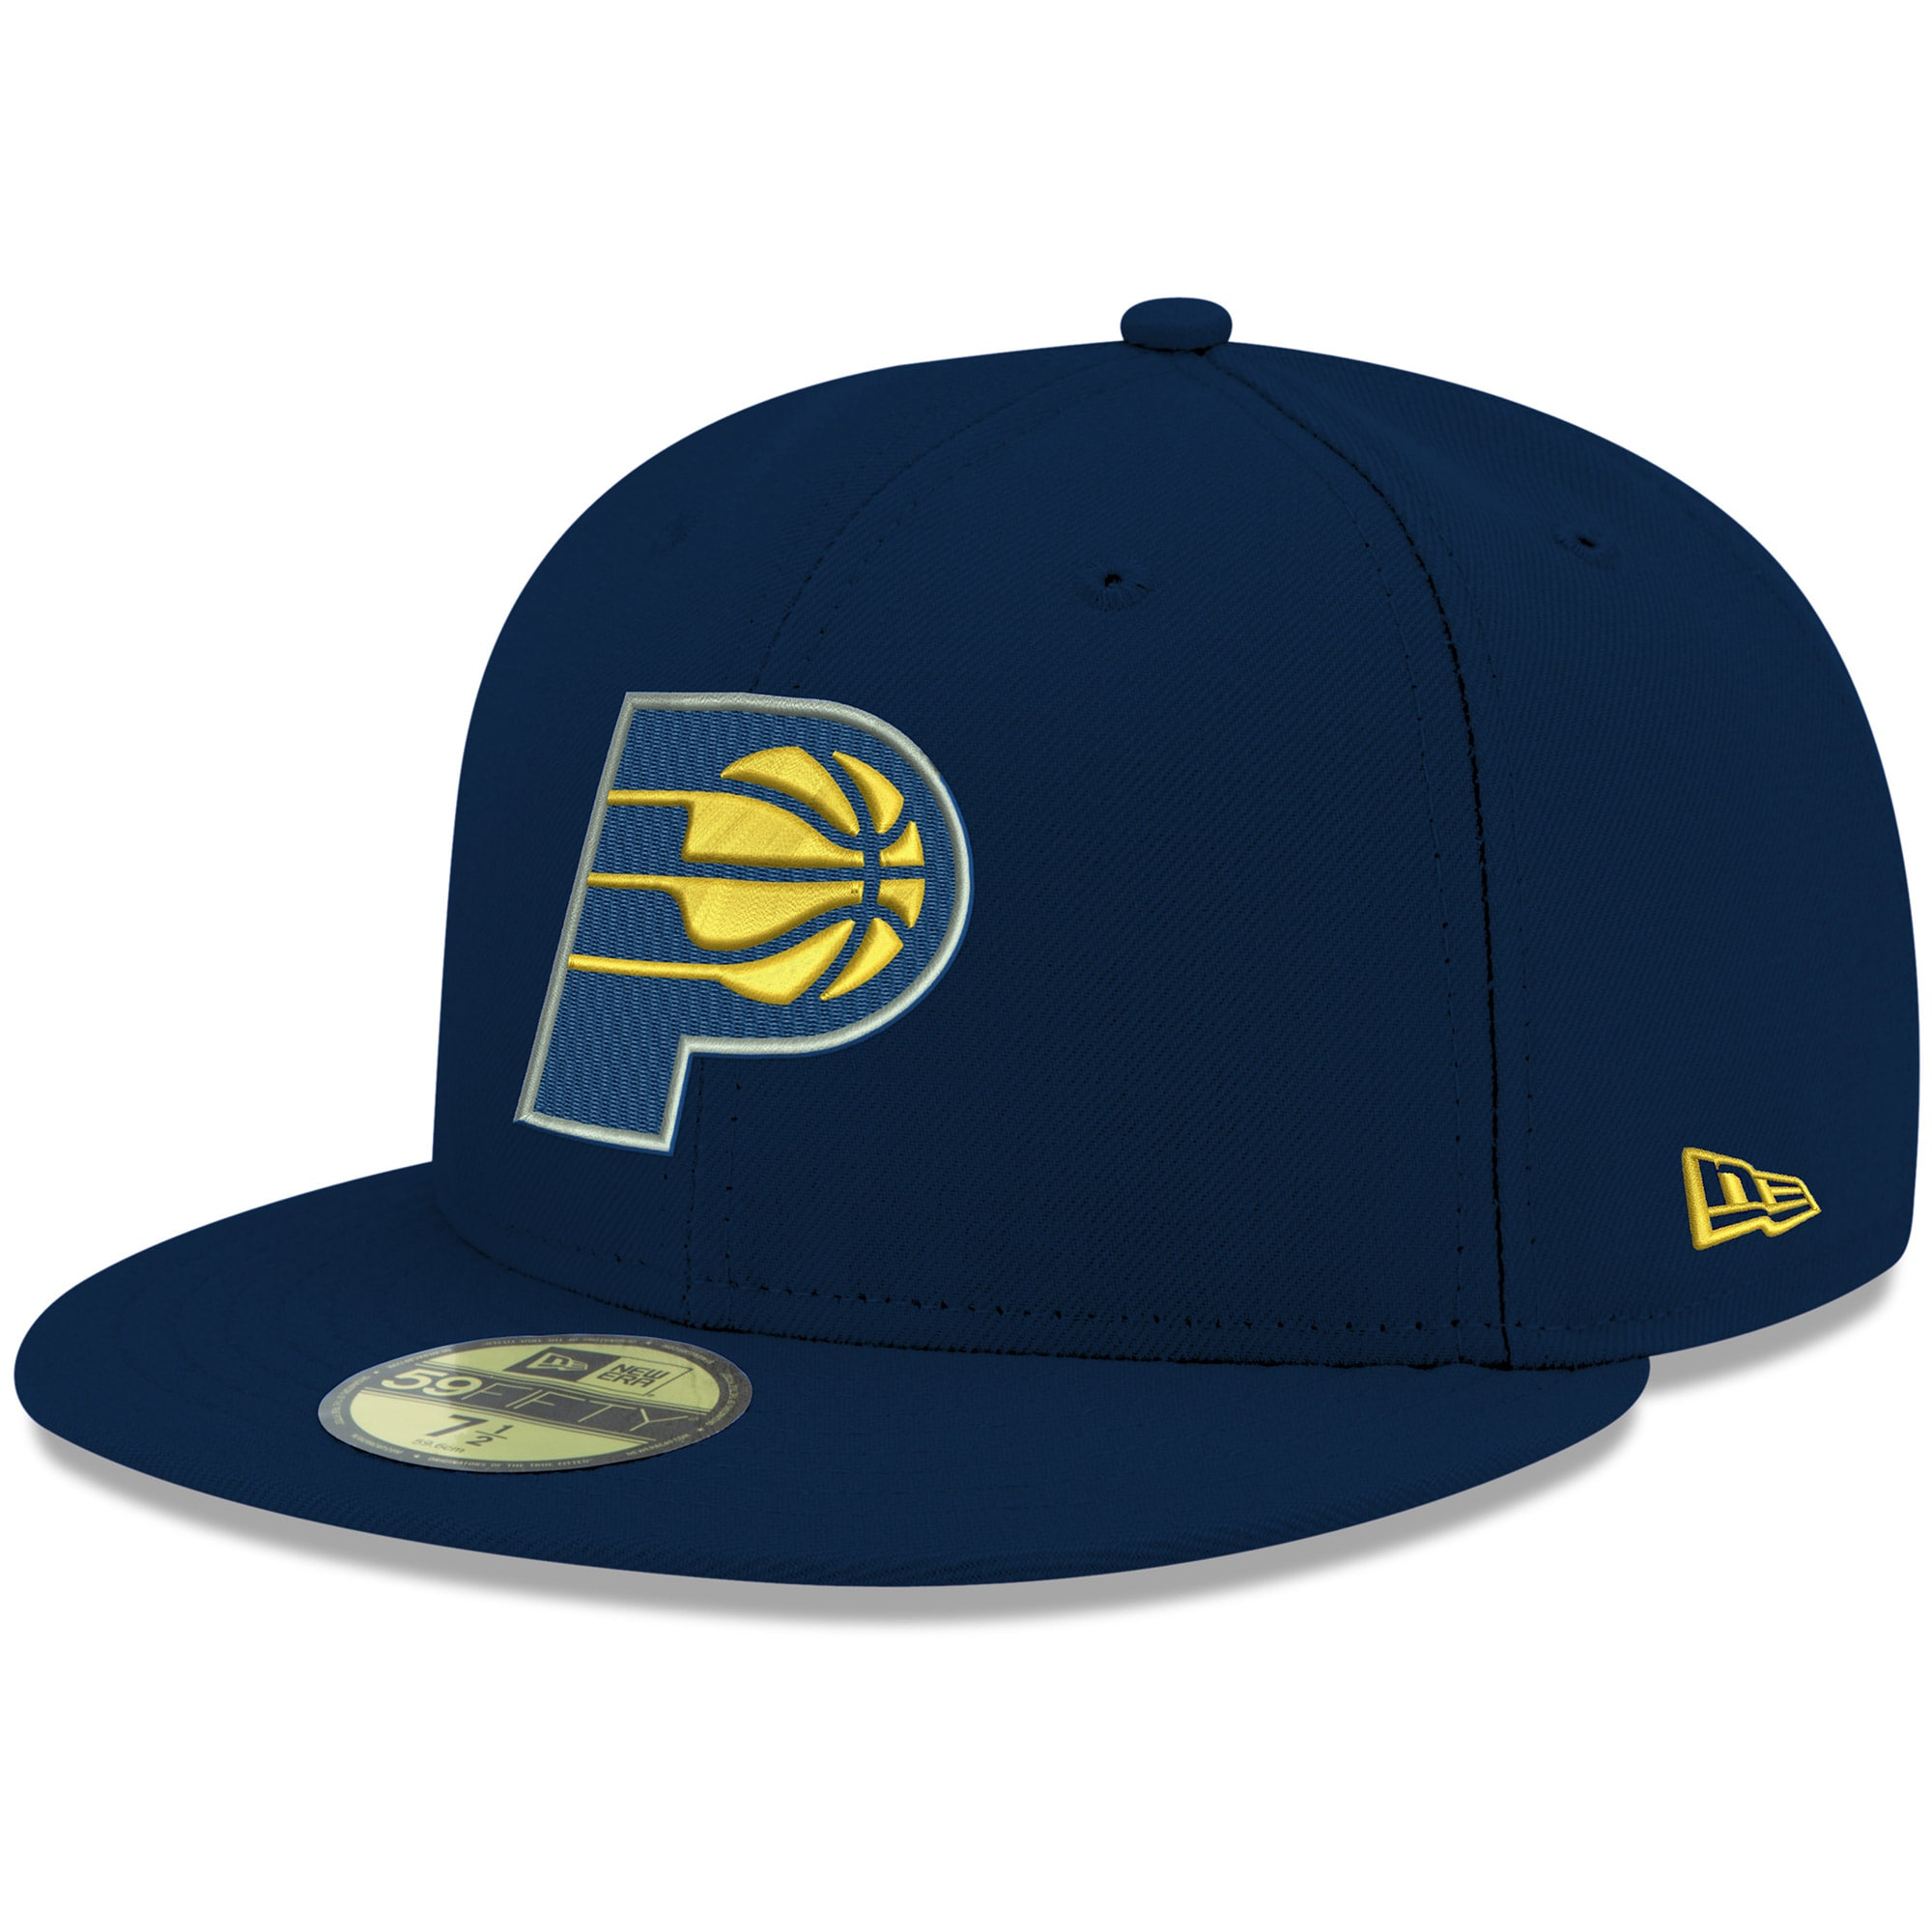 Indiana Pacers New Era Official Team Color 59FIFTY Fitted Hat - Navy